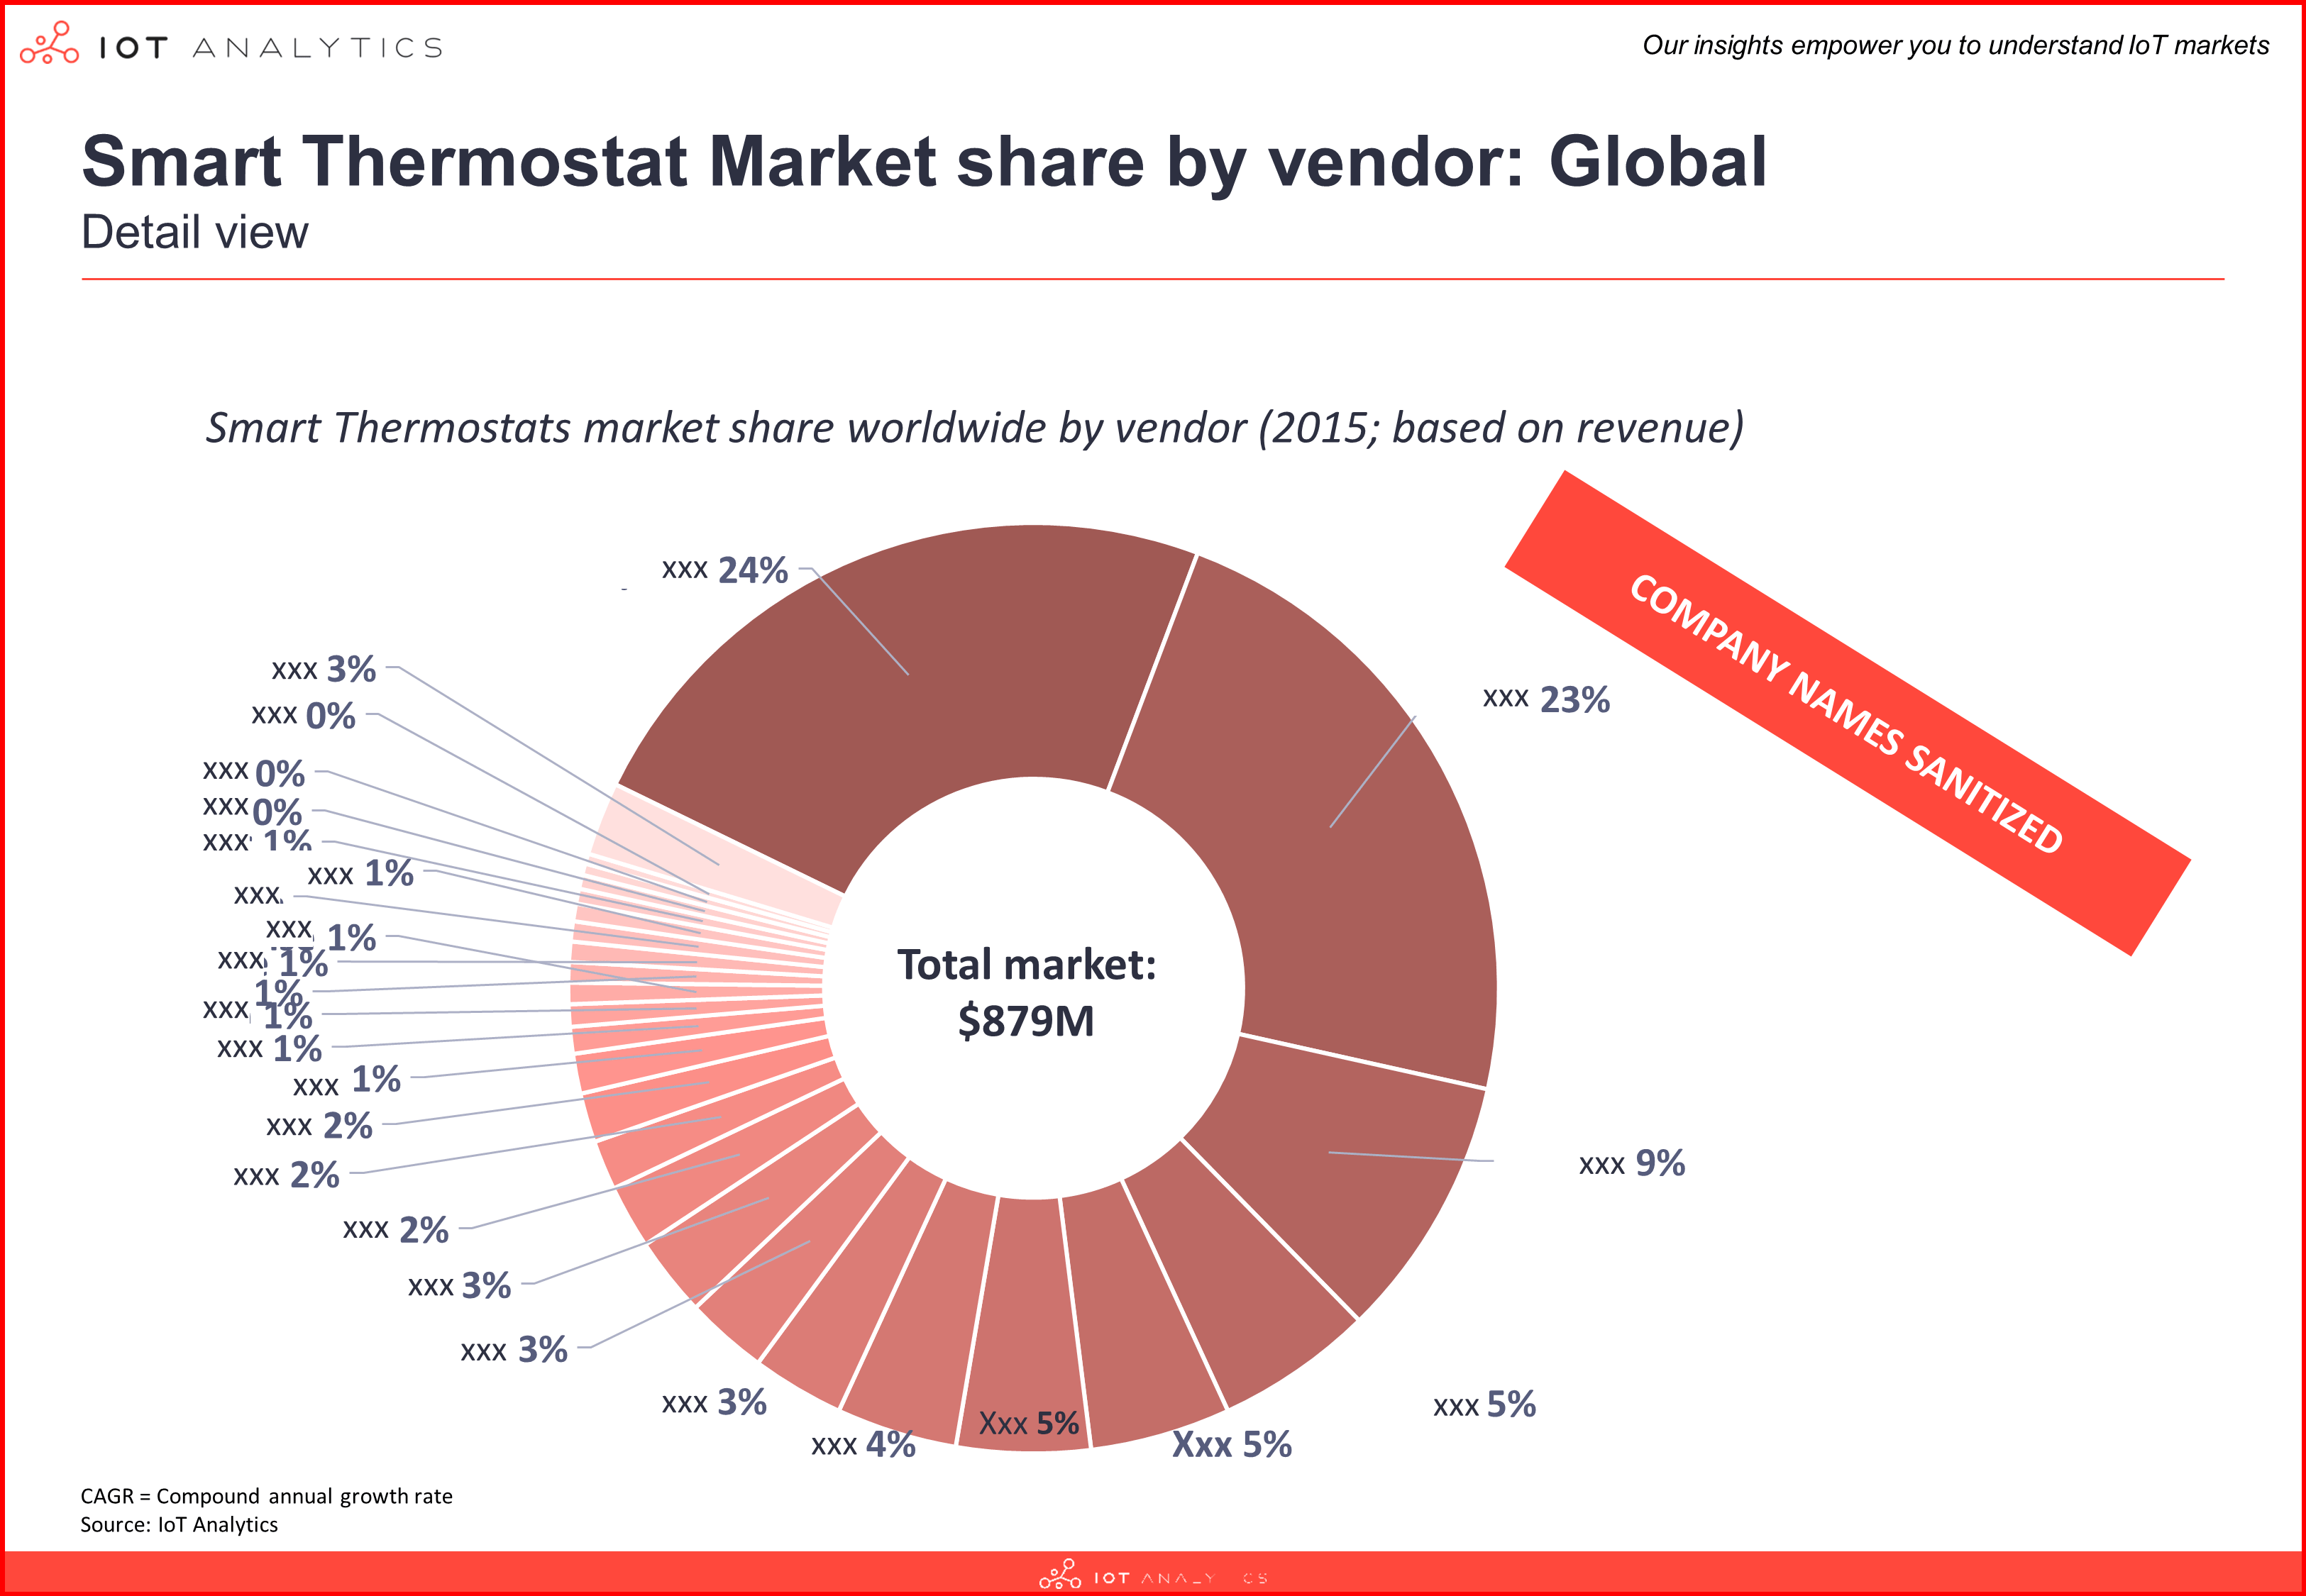 Smart Thermostat Companies 2015 - 2021 Market share